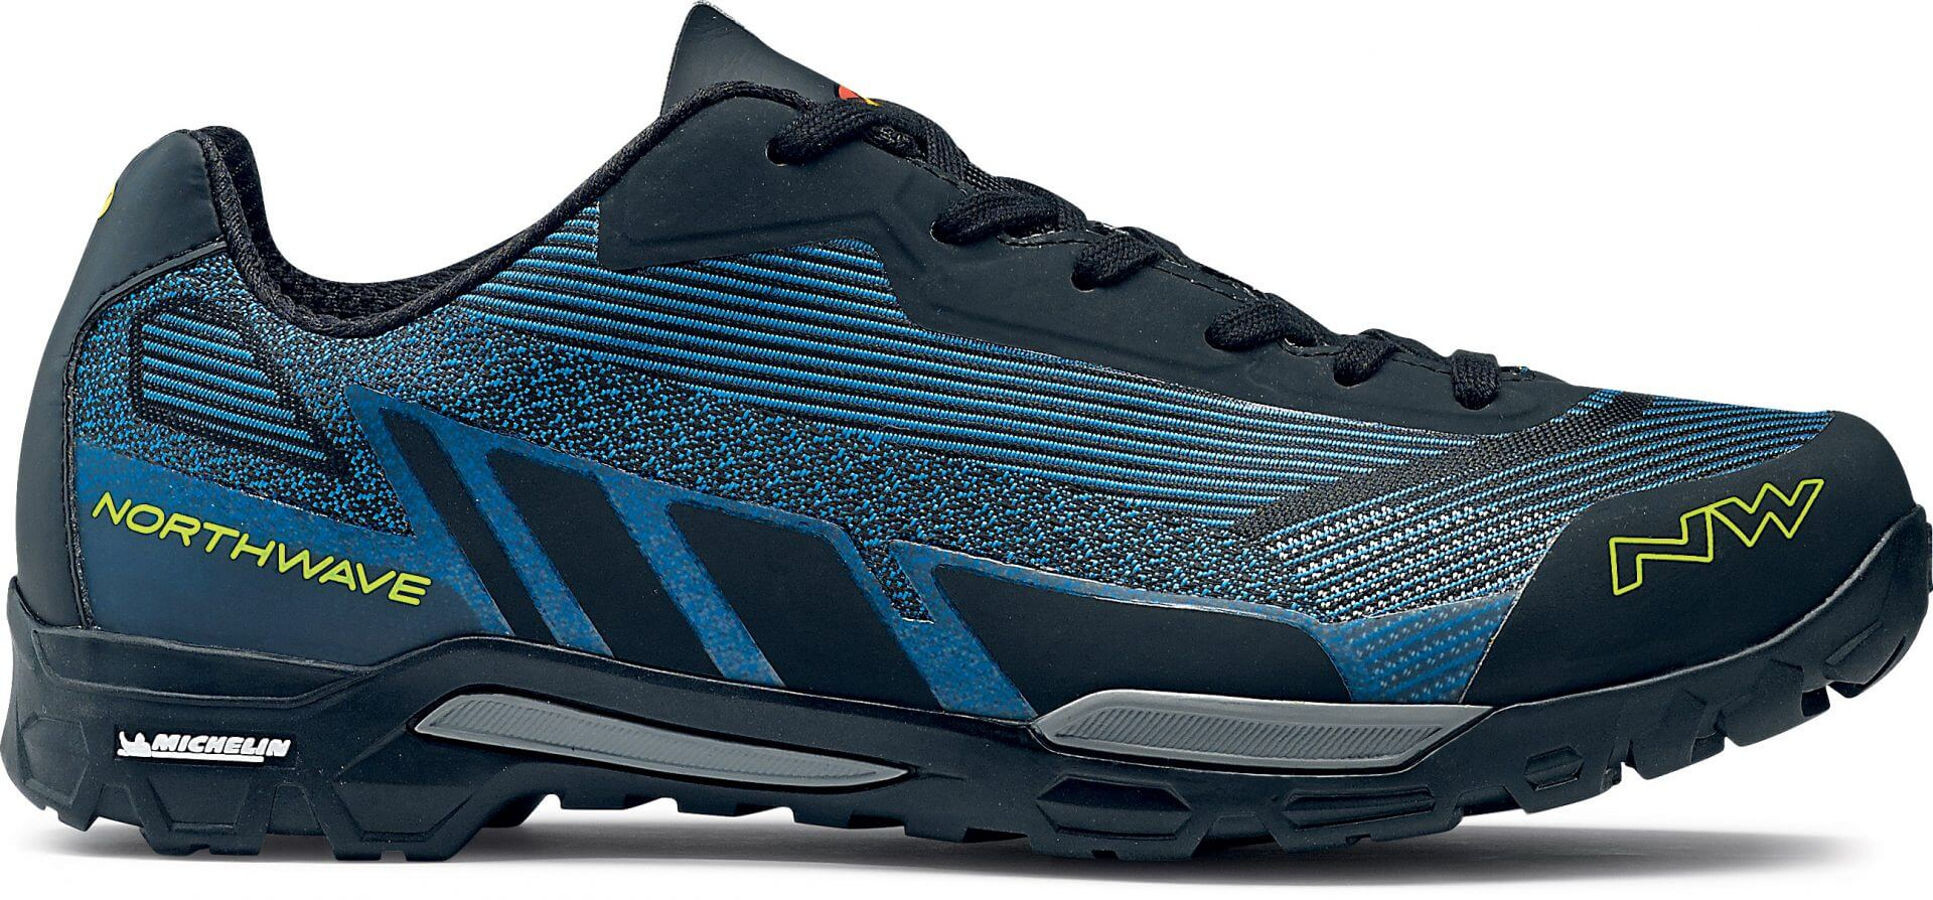 sneakers for cheap 95a06 1cd20 Northwave Outcross Knit 2 Shoes Men blue.jpg